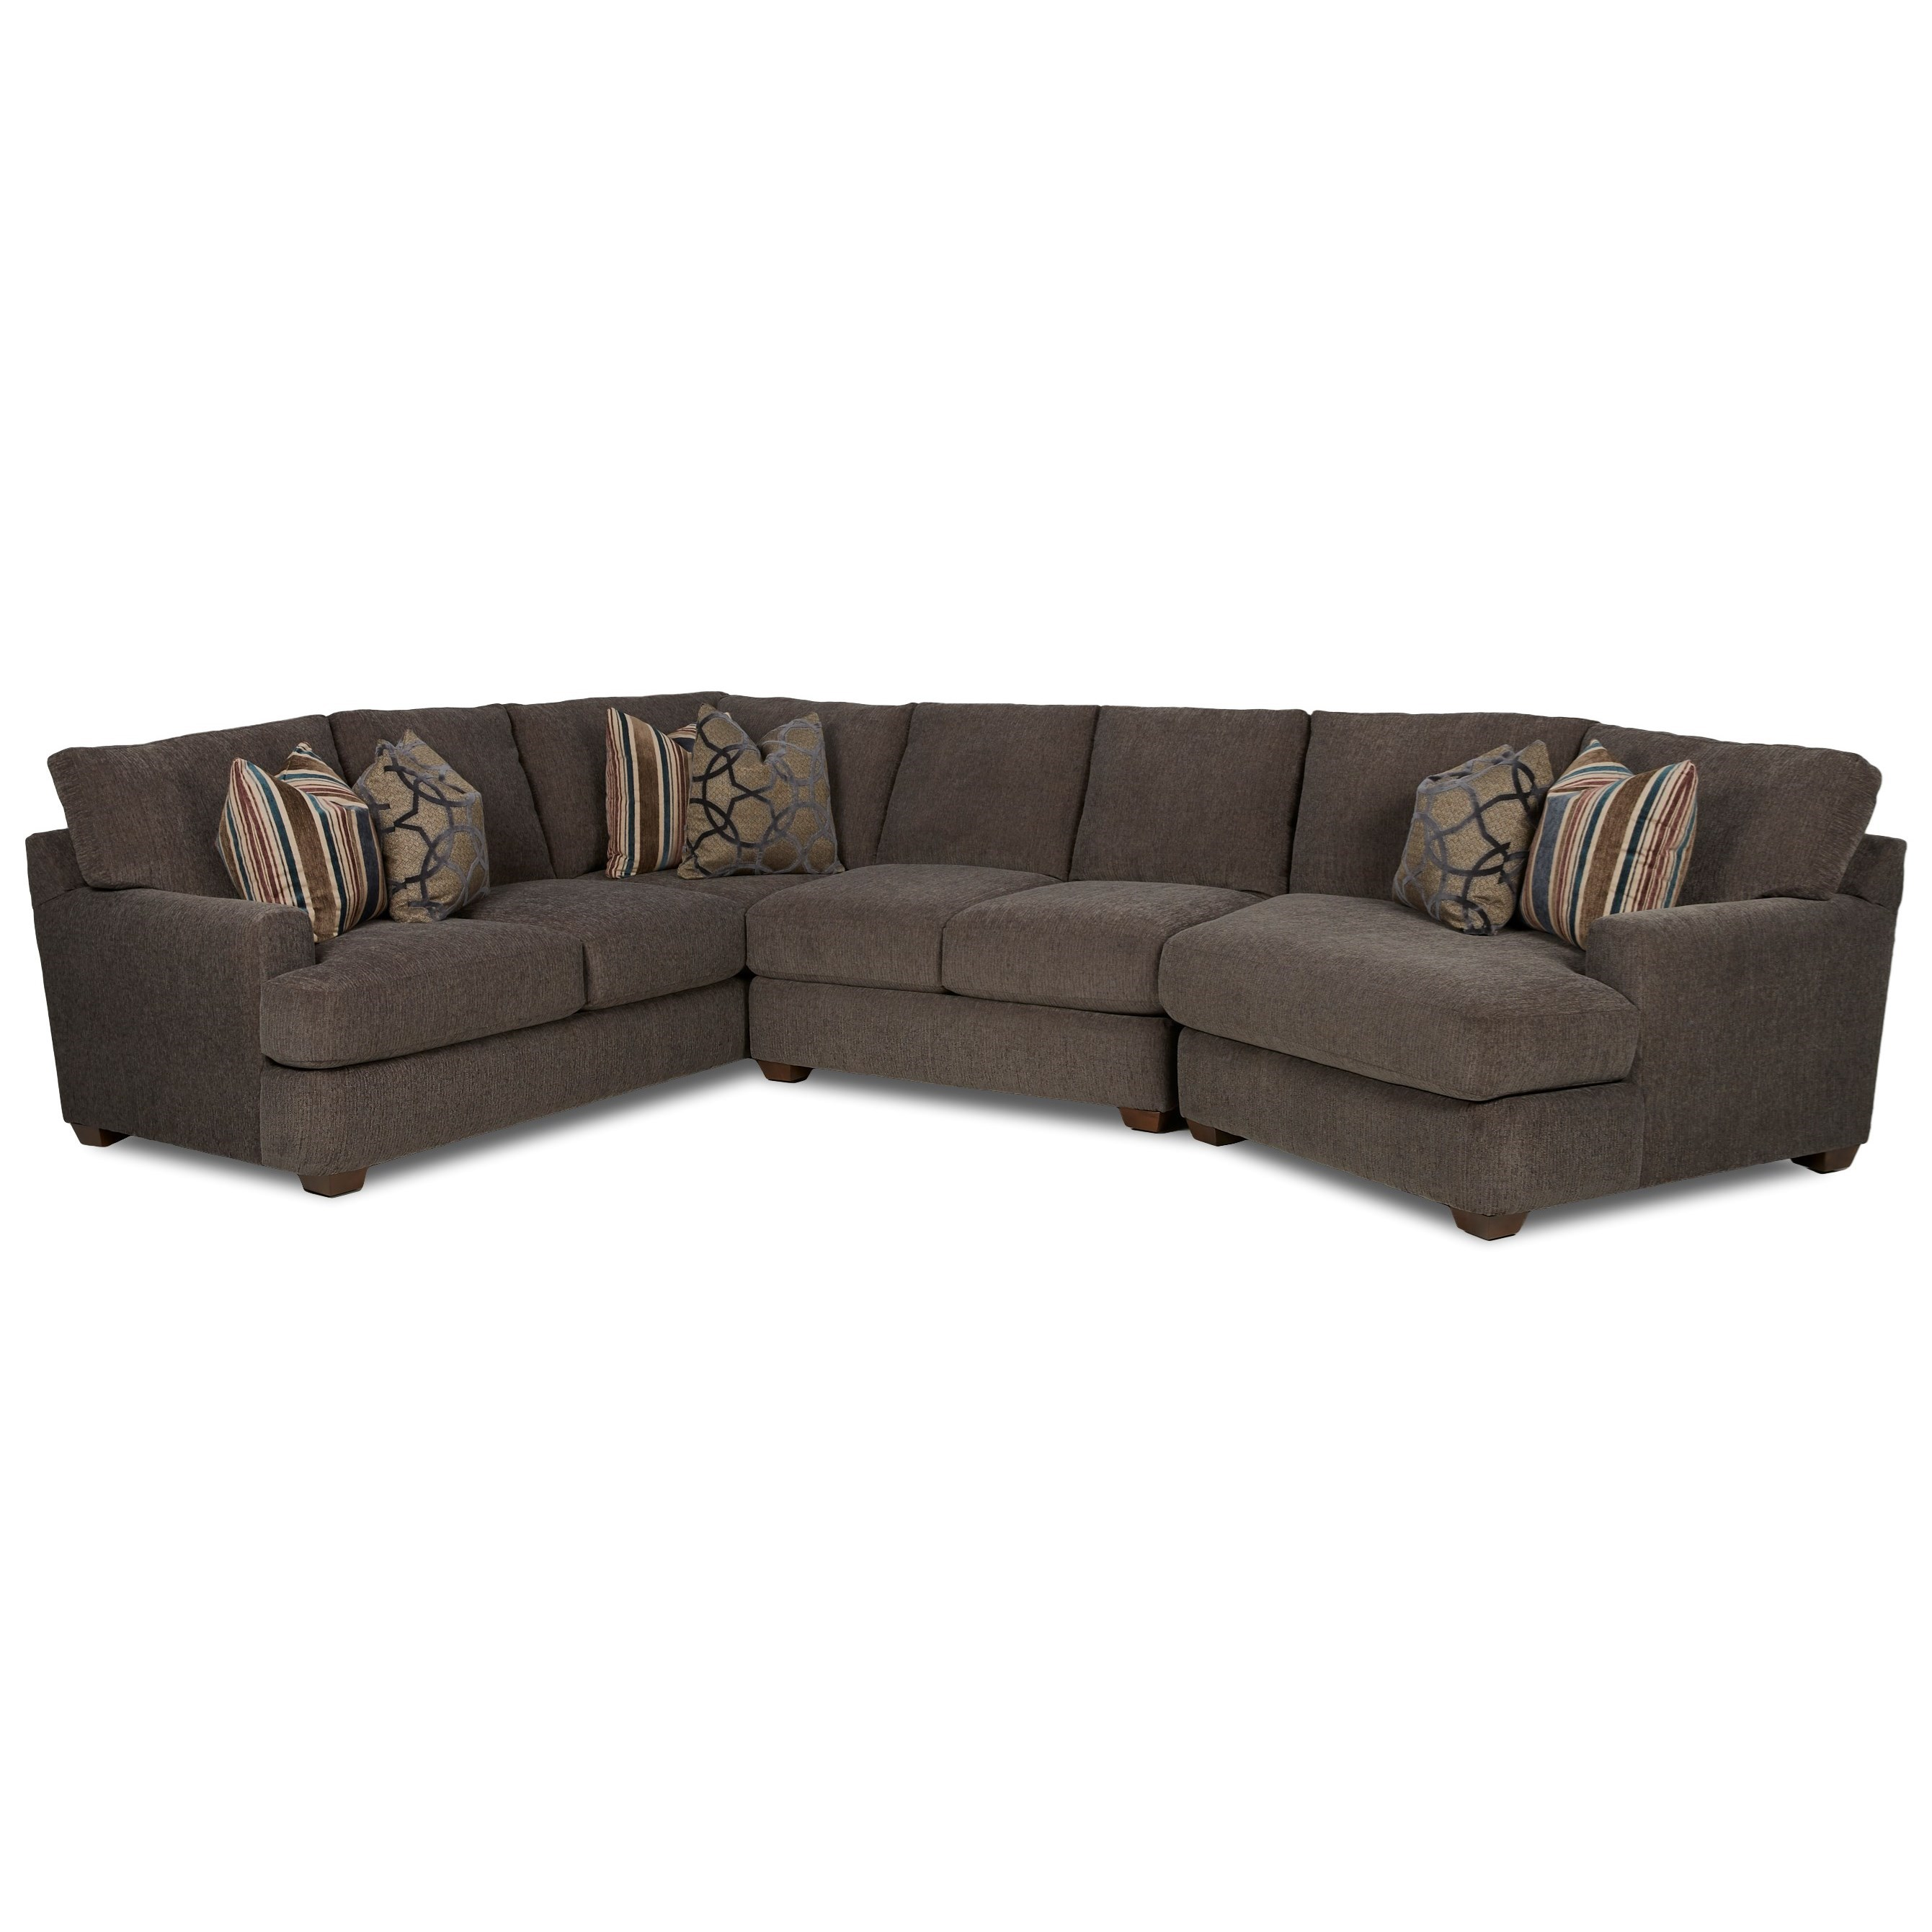 Haynes 3 Pc Sectional Sofa w/ RAF Cuddler by Klaussner at Johnny Janosik